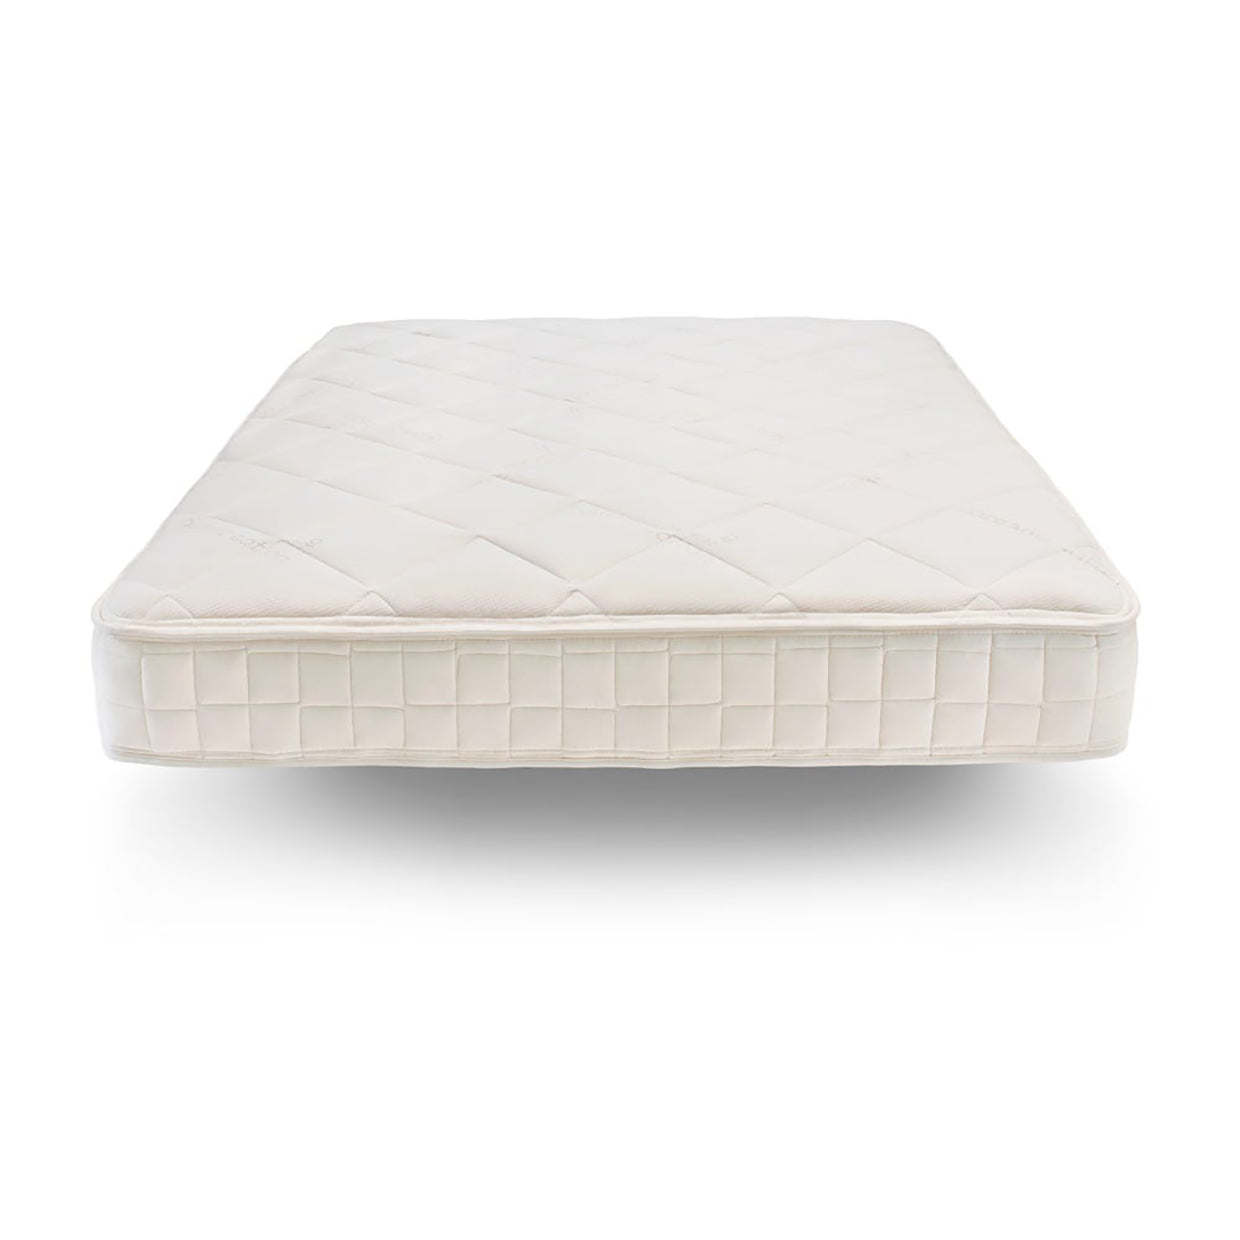 Naturepedic Organic Mattresses -  Lower than Amazon and Wayfair